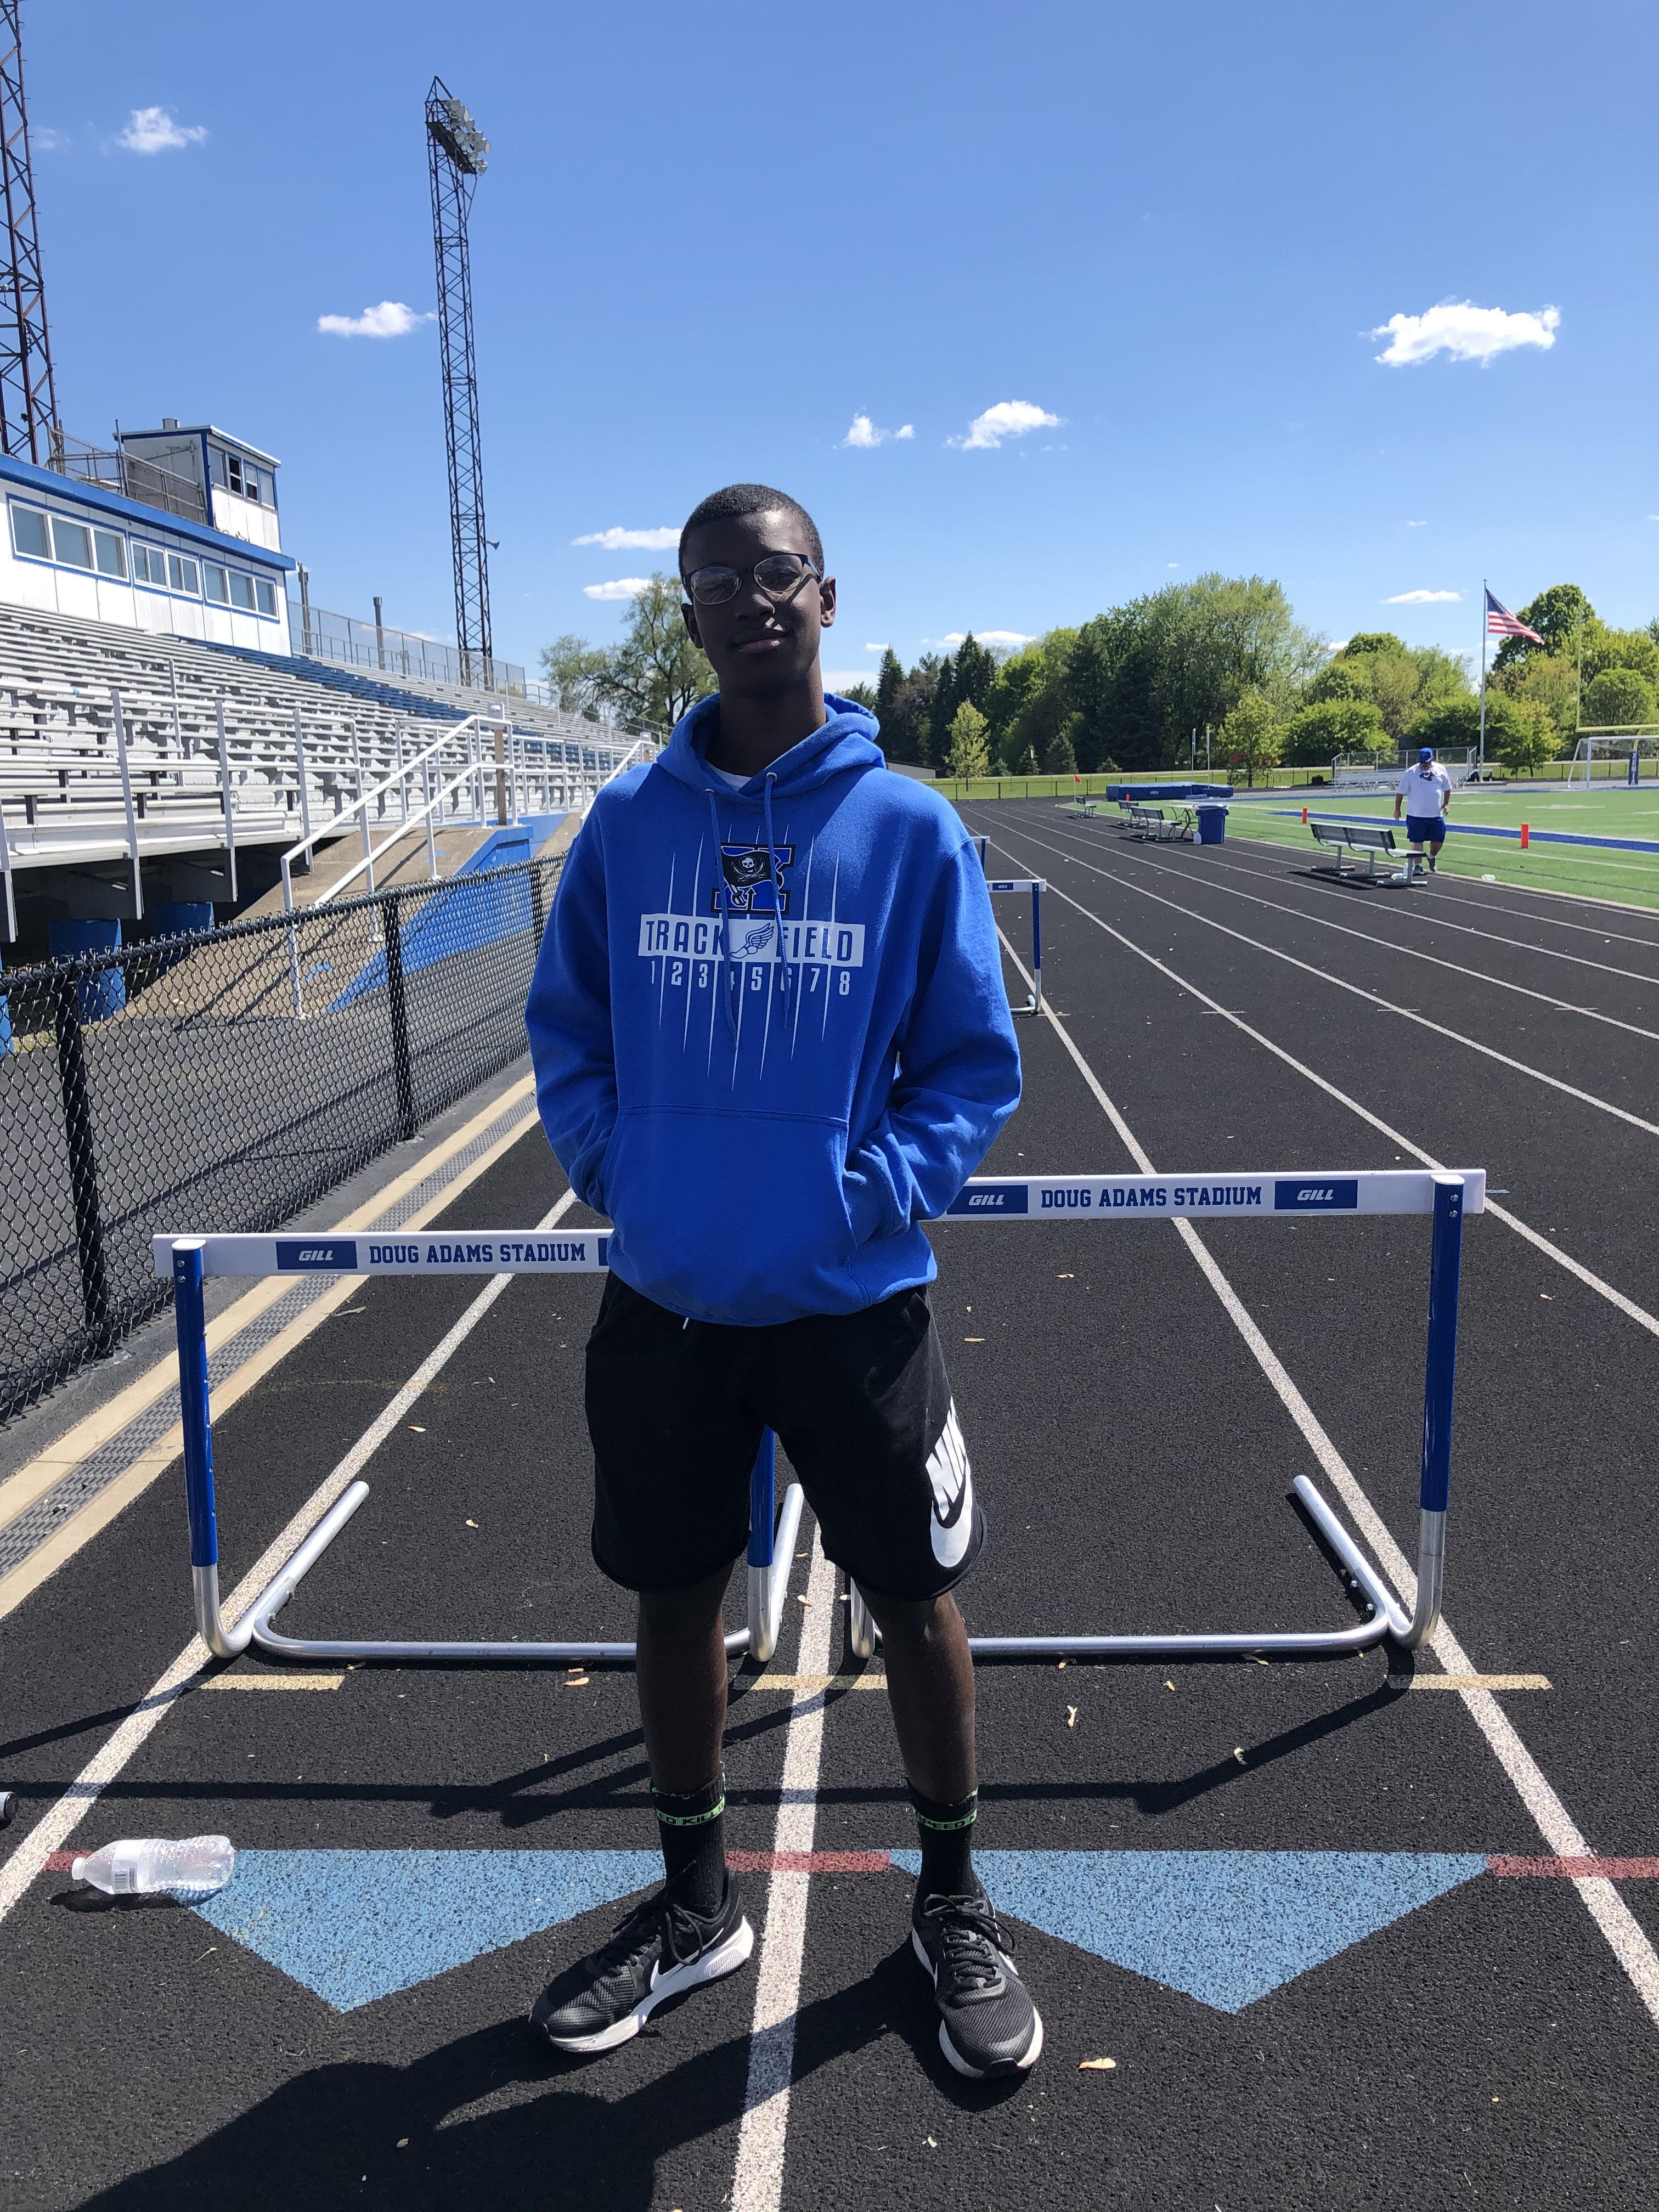 Roman Smith Qualifies For Middle School State Track & Field Championships